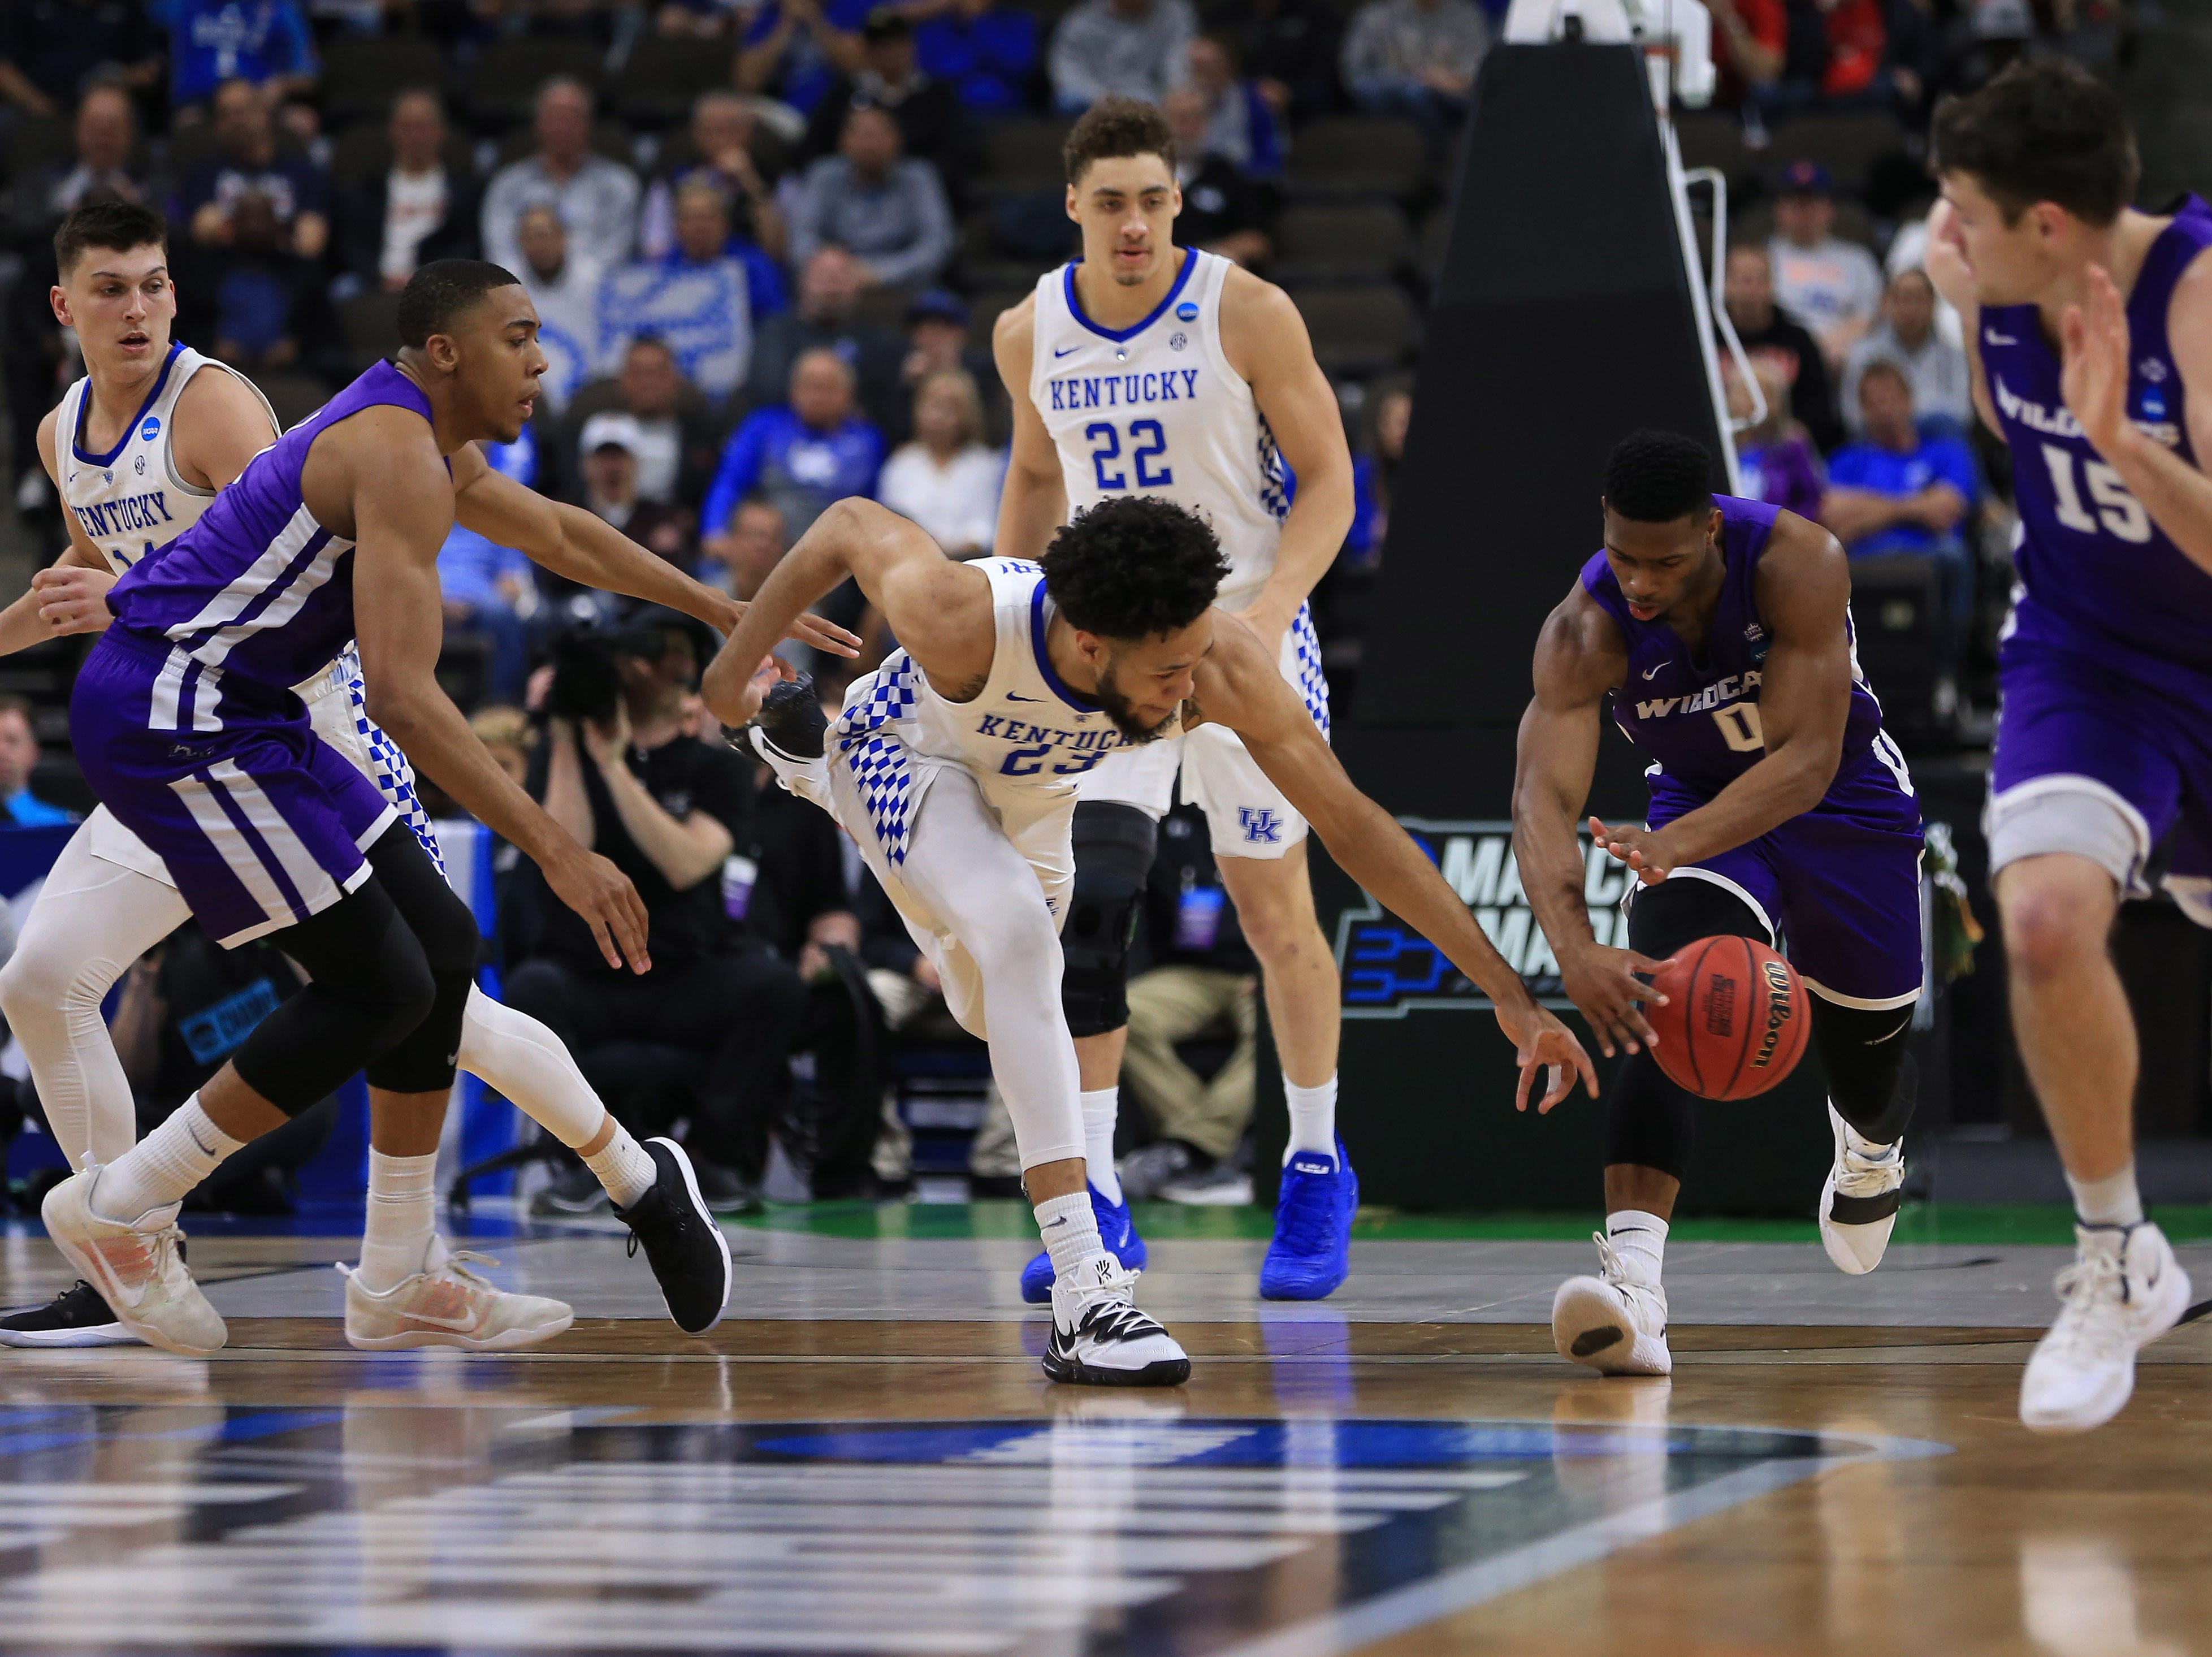 Mar 21, 2019; Jacksonville, FL, USA; Kentucky Wildcats forward EJ Montgomery (23) and Abilene Christian Wildcats guard Jaylen Franklin (0) battle for the ball during the first quarter in the first round of the 2019 NCAA Tournament at Jacksonville Veterans Memorial Arena. Mandatory Credit: Matt Stamey-USA TODAY Sports